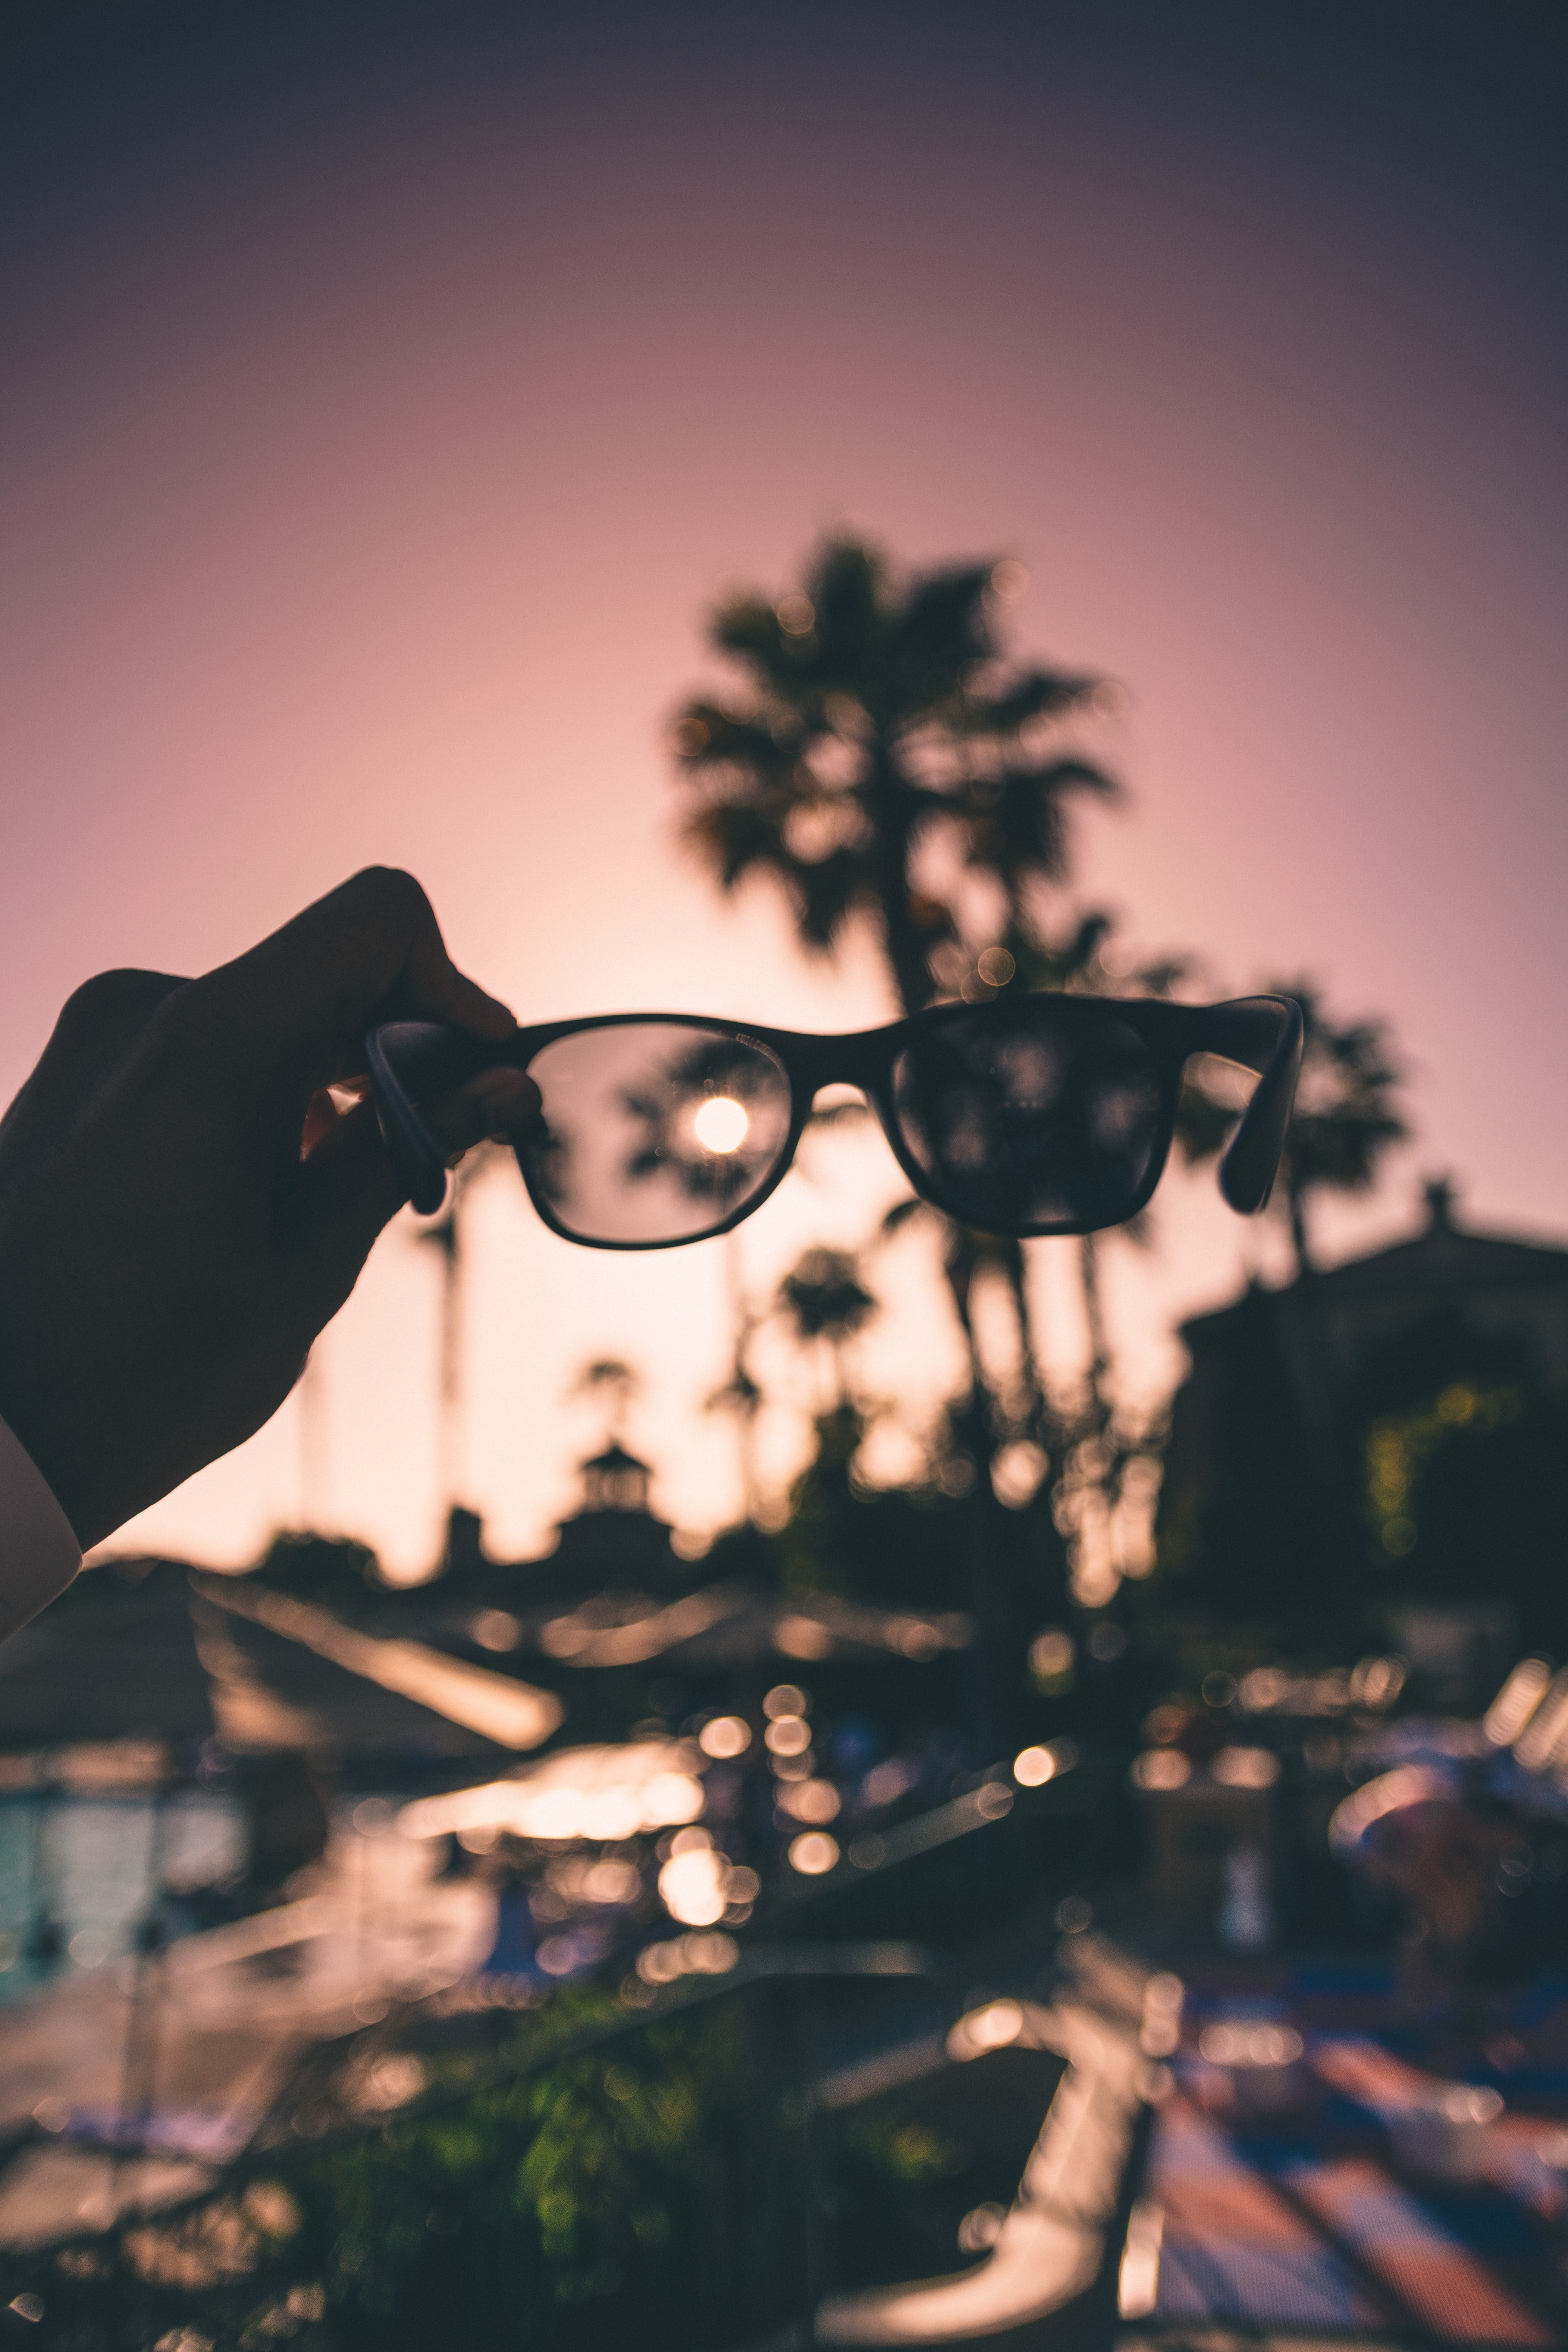 person holding black framed sunglasses